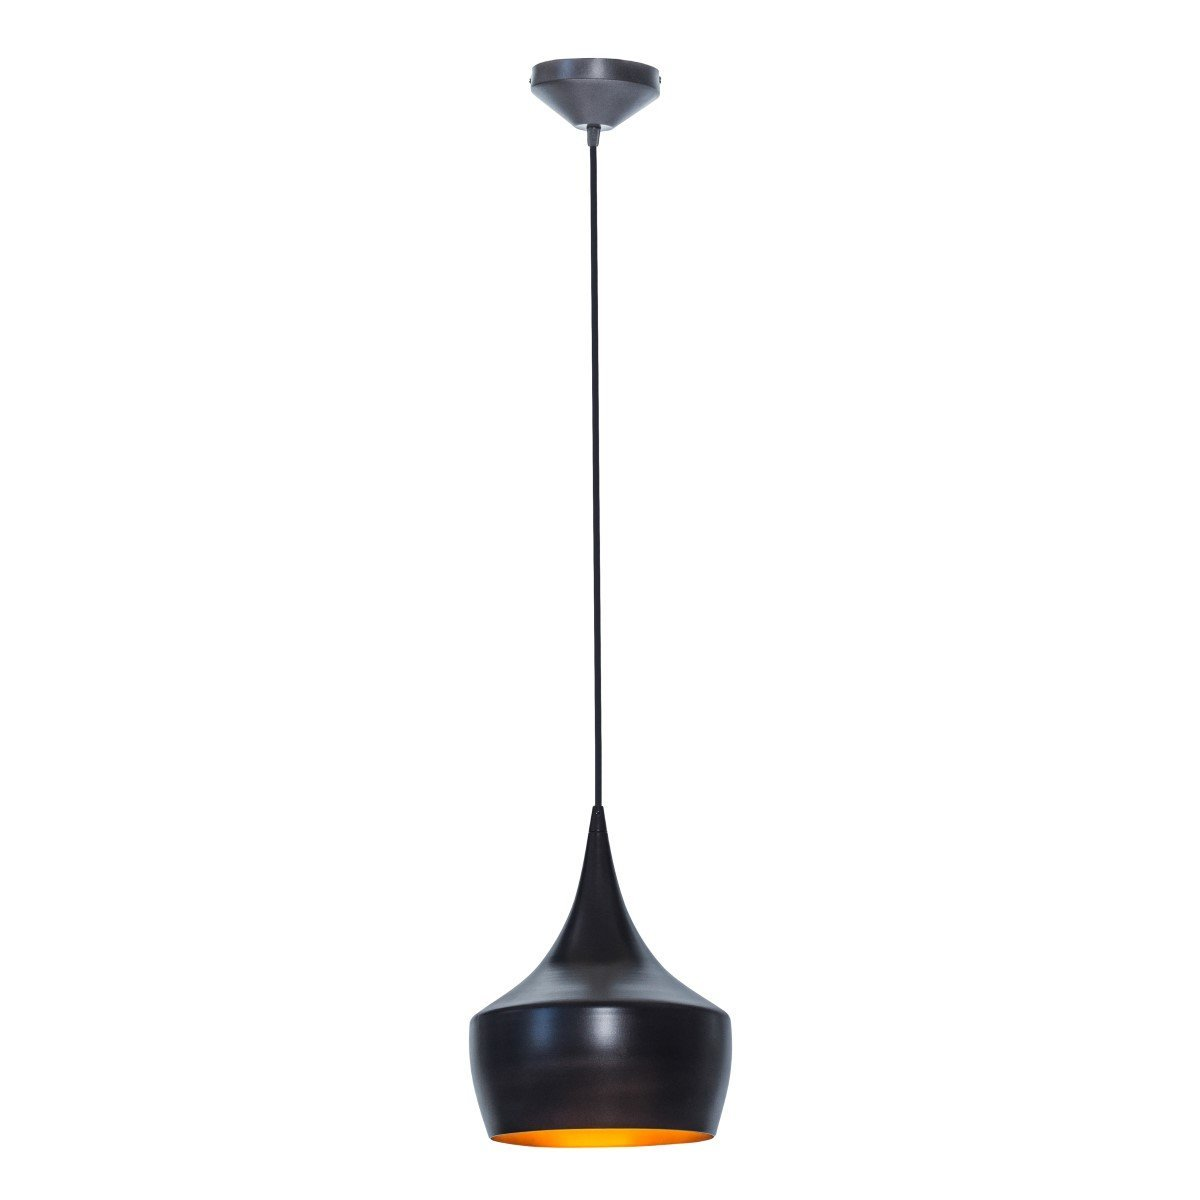 globe electric 1light small modern industrial pendant oil rubbed bronze gold inner finish 1x a19 60w bulb sold separately